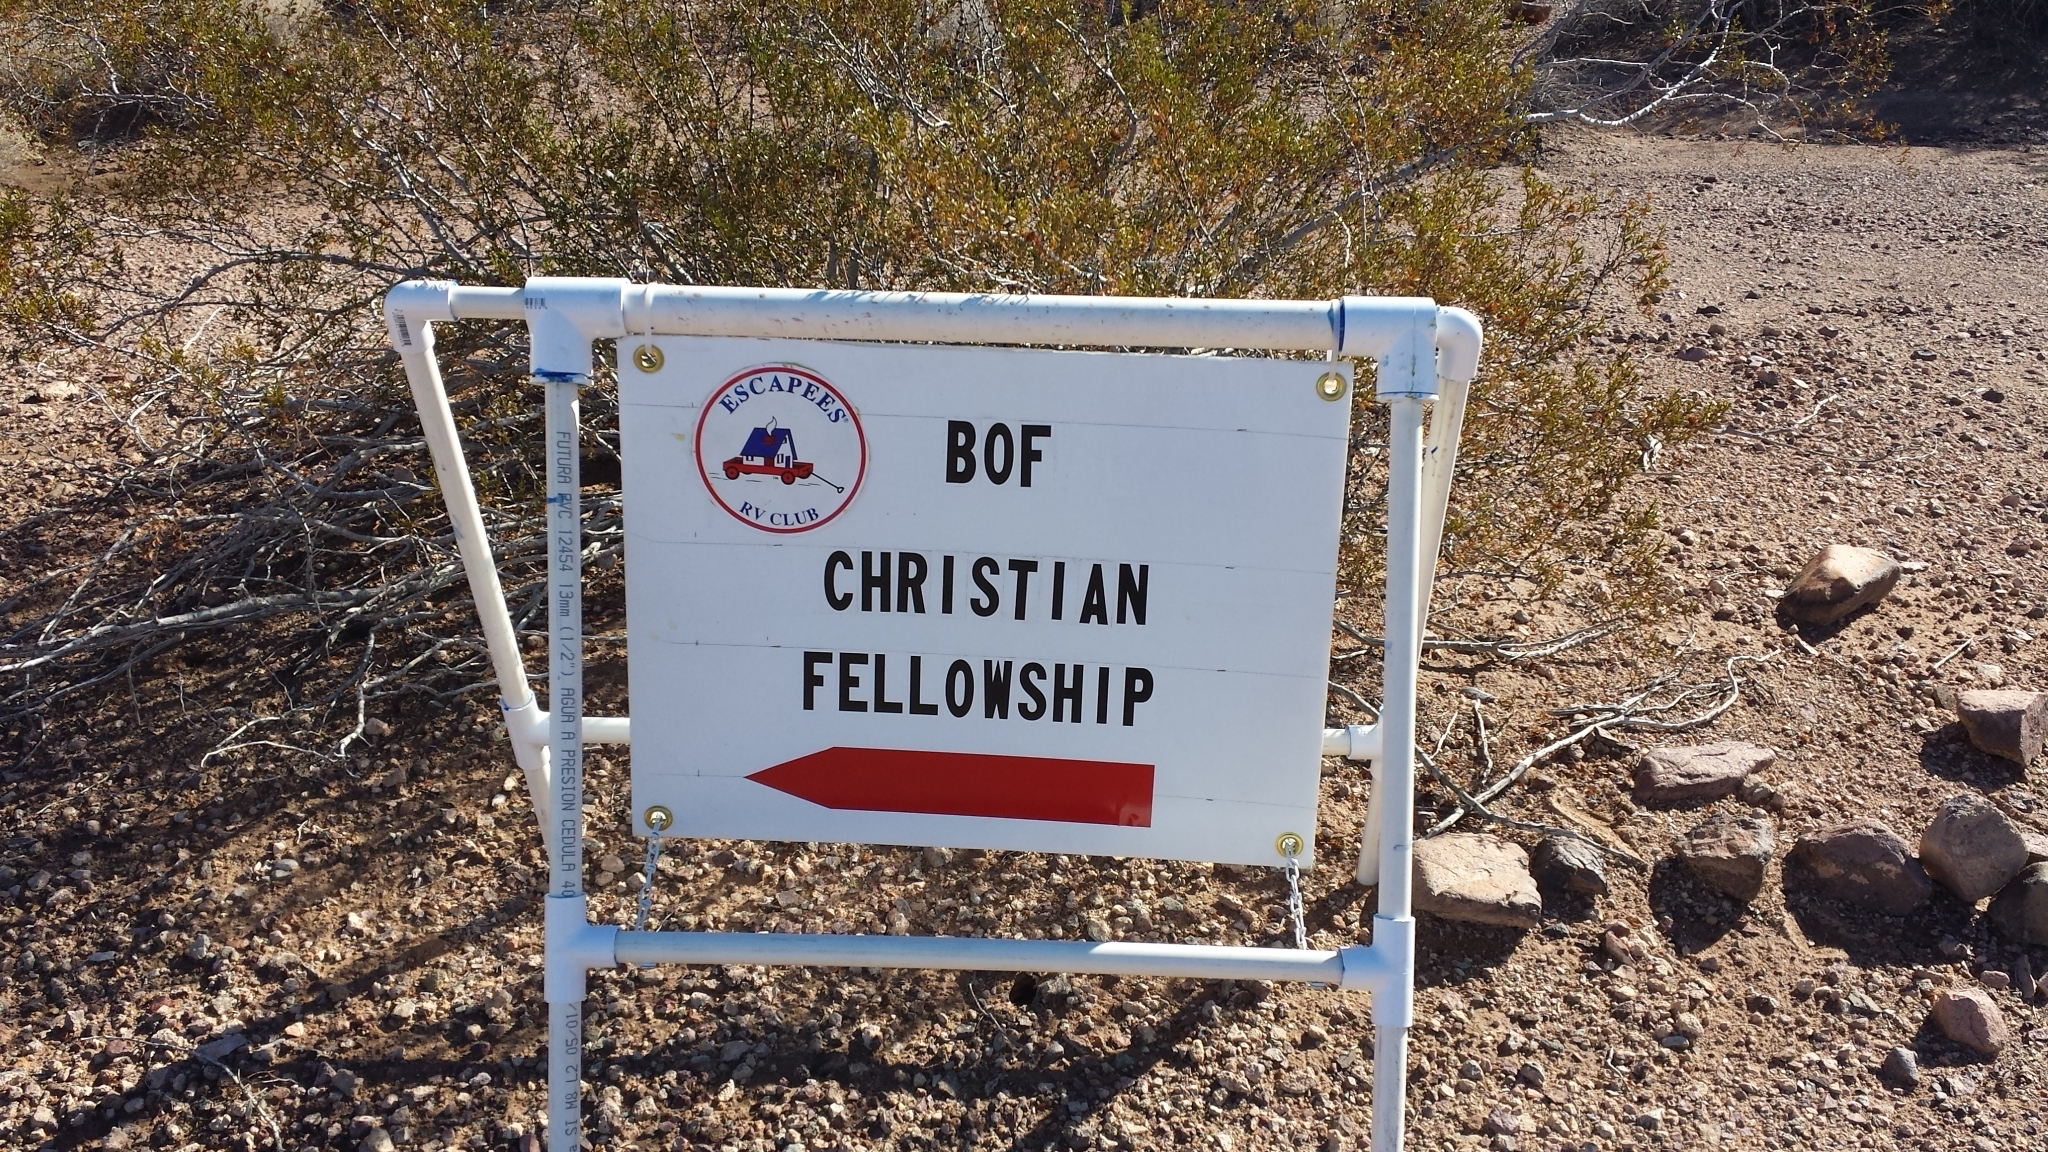 christian singles in quartzsite See 2018's best christian dating sites reviewed by experts search millions of christian users, and try sites 100% free (as seen on foxnews & cnn.